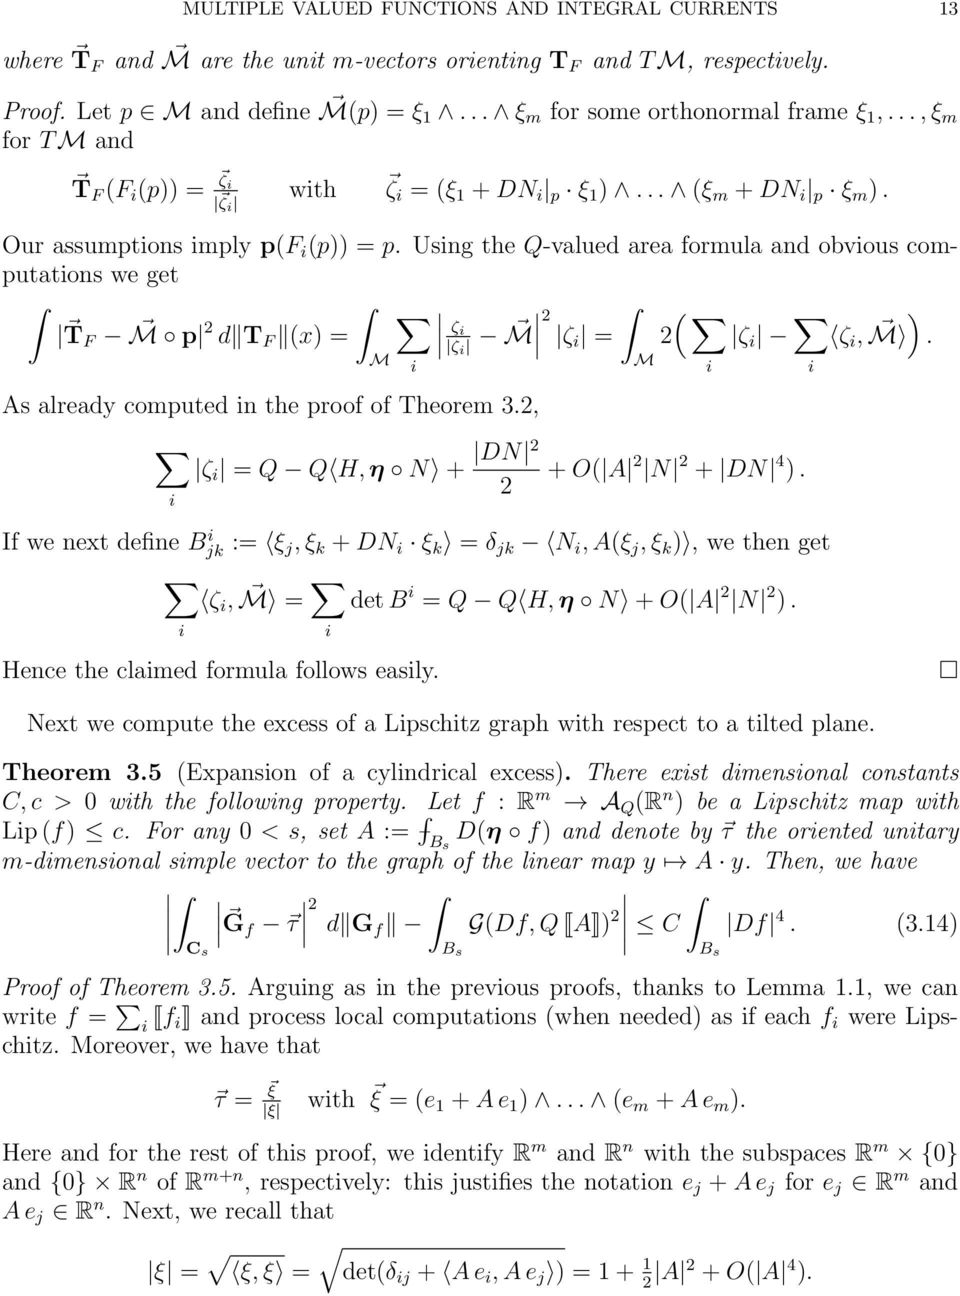 Usng the Q-valued area formula and obvous computatons we get T F p 2 d T F (x) = ζ ζ 2 ( ζ = 2 ζ ) ζ,. As already computed n the proof of Theorem 3.2, ζ = Q Q H, η N + DN 2 2 + O( A 2 N 2 + DN 4 ).